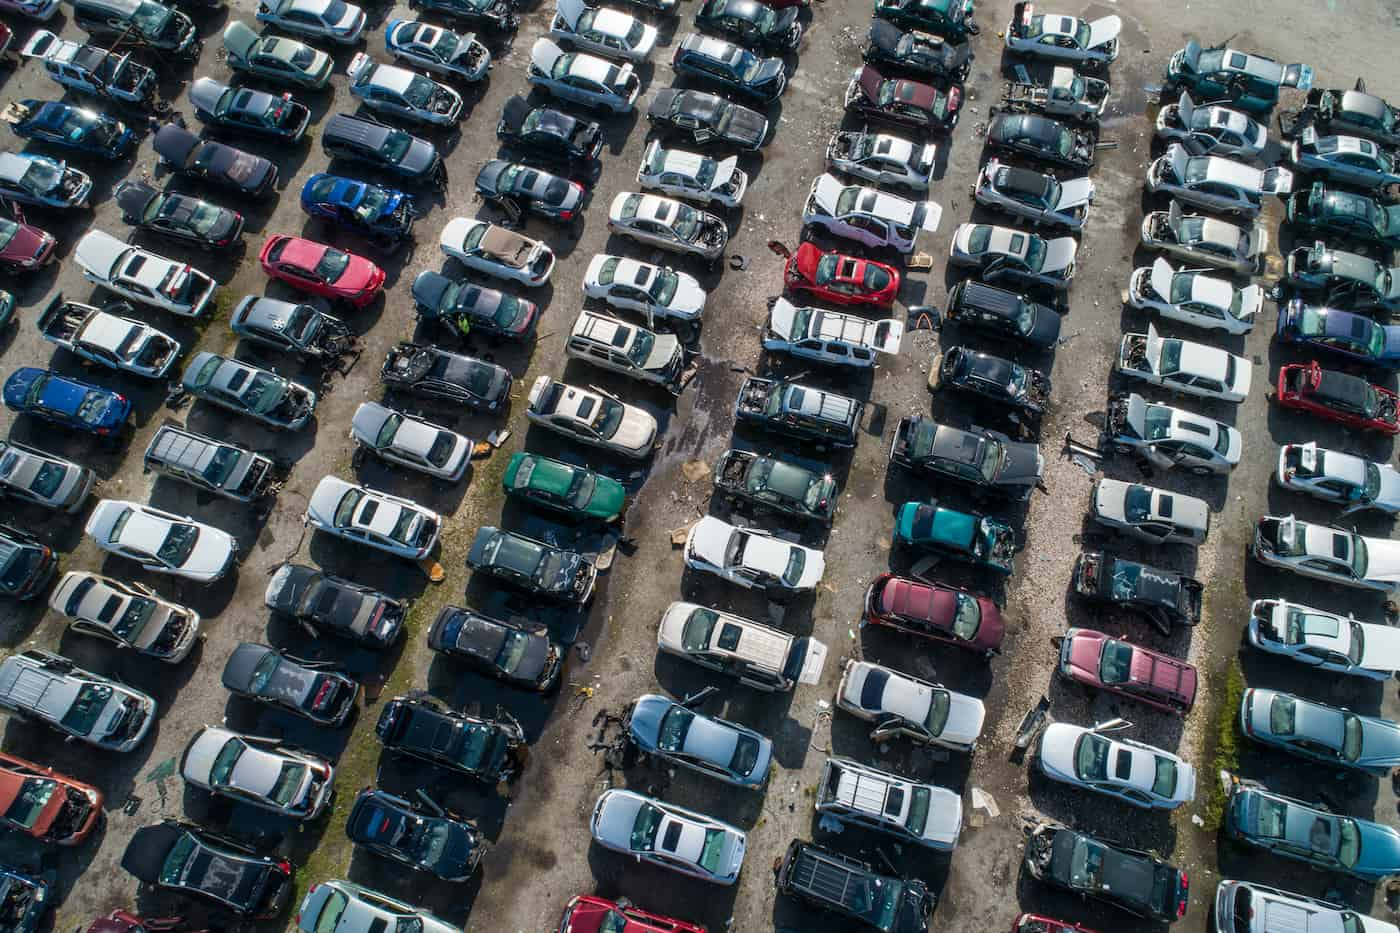 birds eye view of a salvage junk yard full of cars